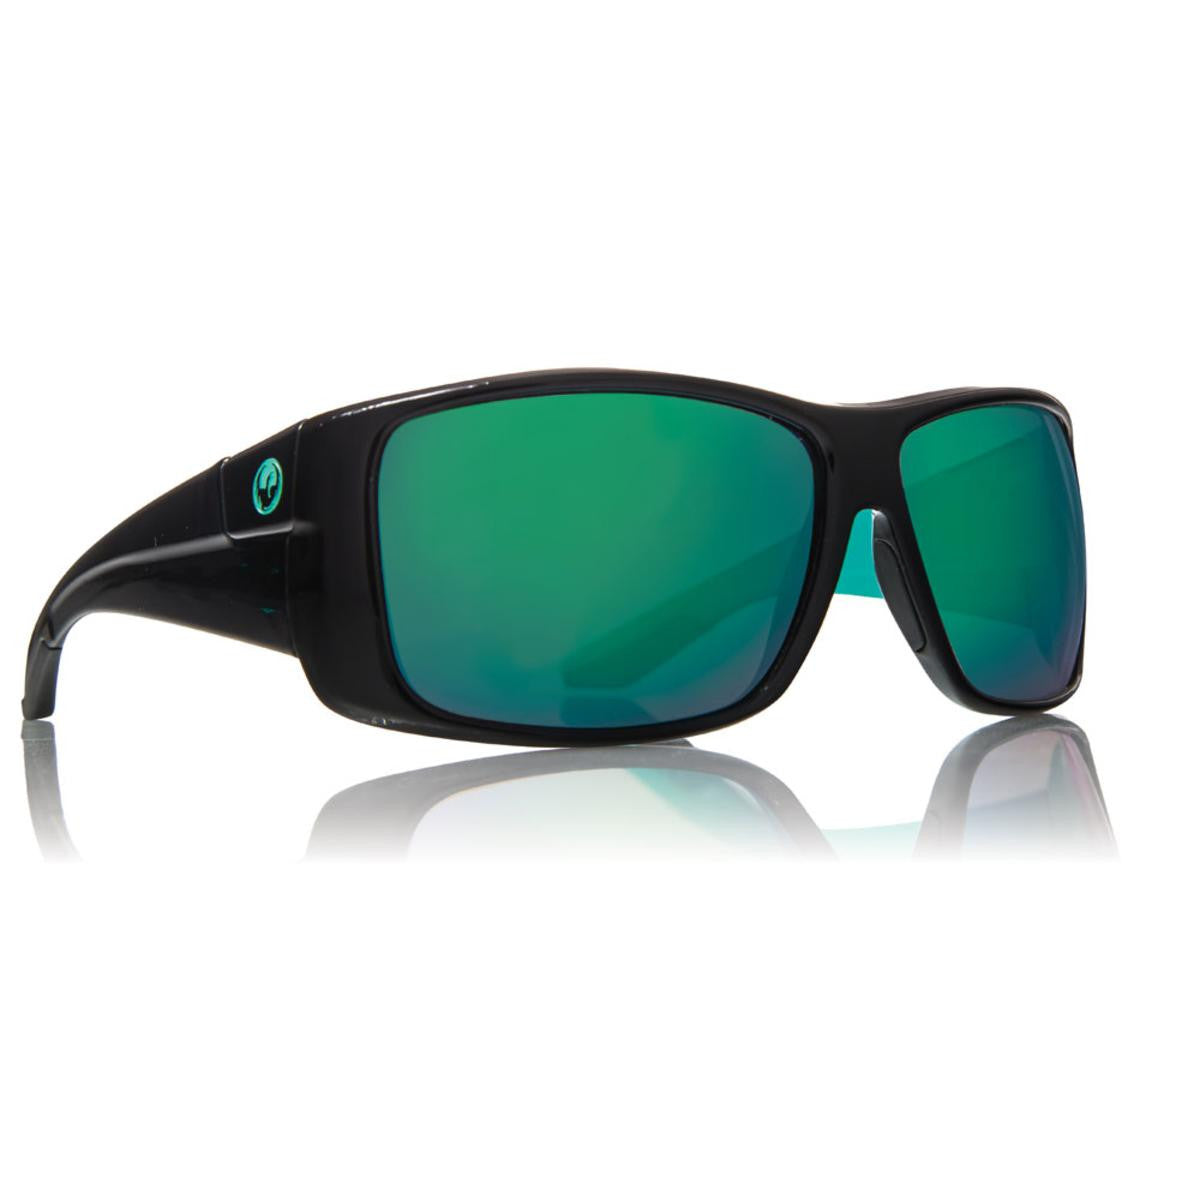 Dragon Kit Men's Sunglasses